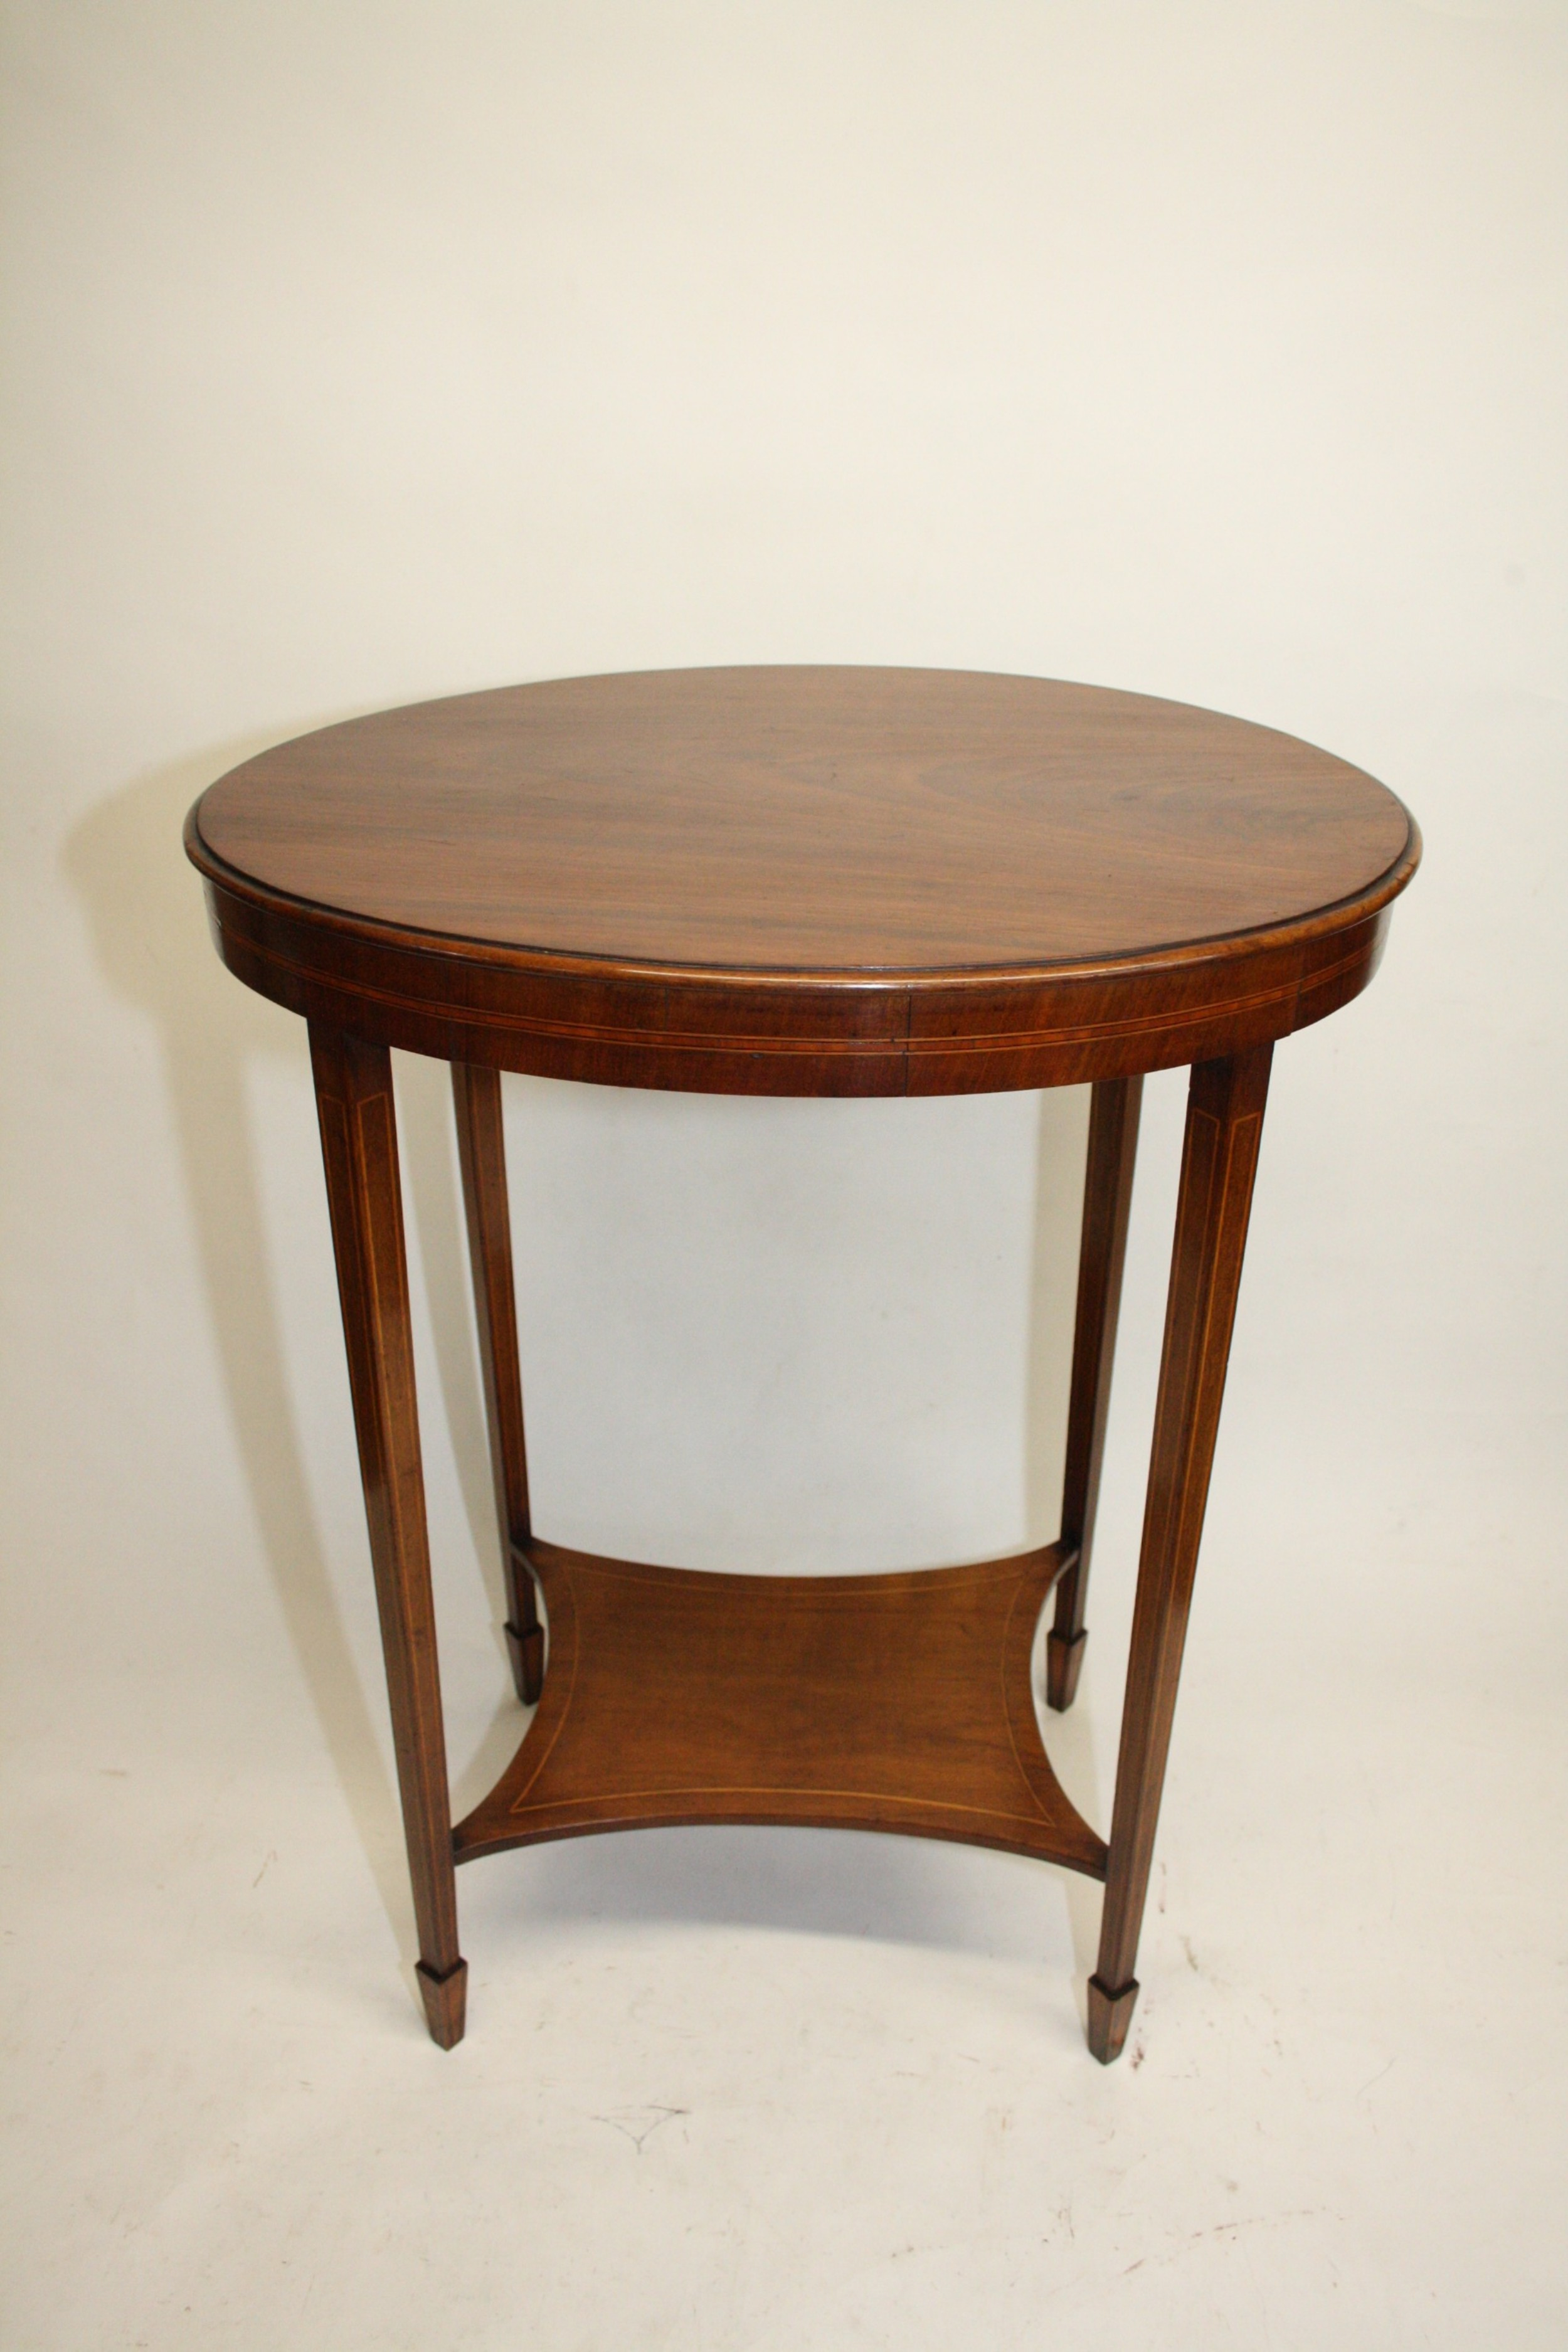 oval occasional table circa 1900